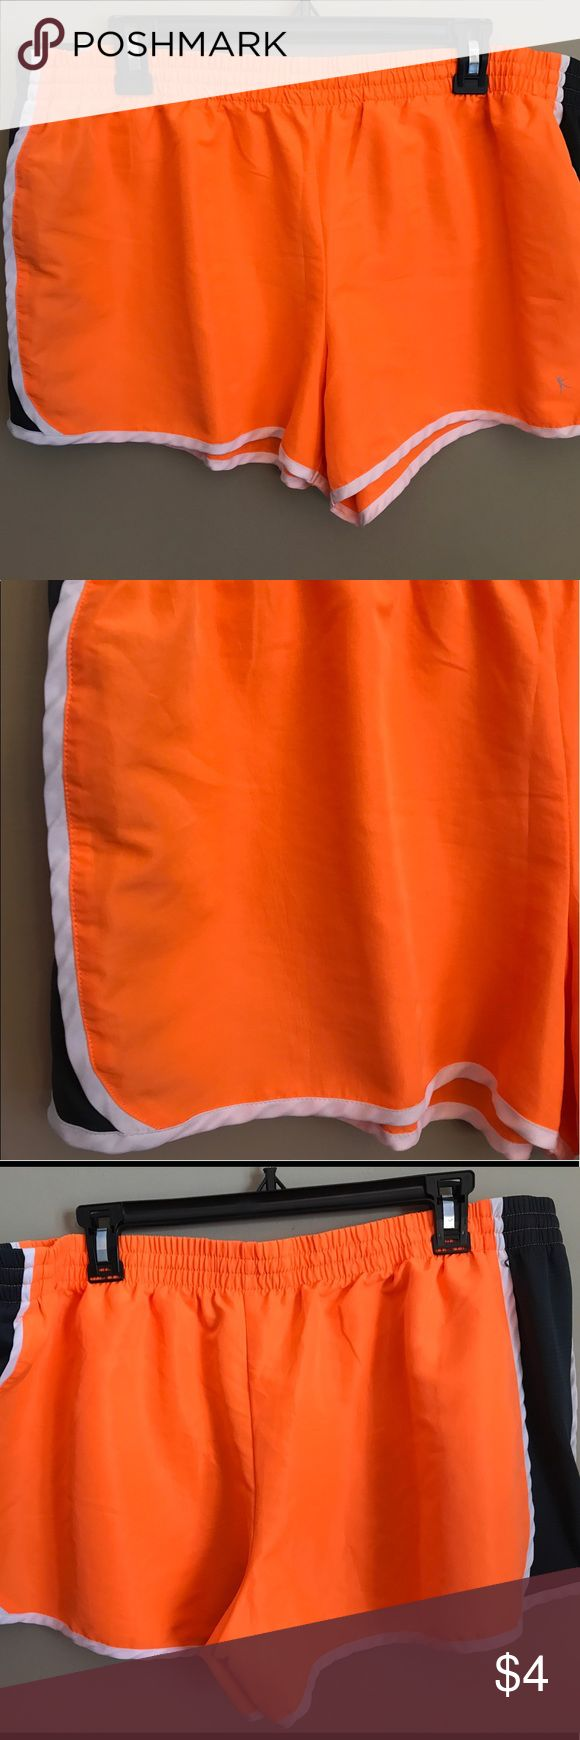 Danskin Now Women's Running Shorts Bright orange and slate grey. 100% polyester. Danskin Now Shorts